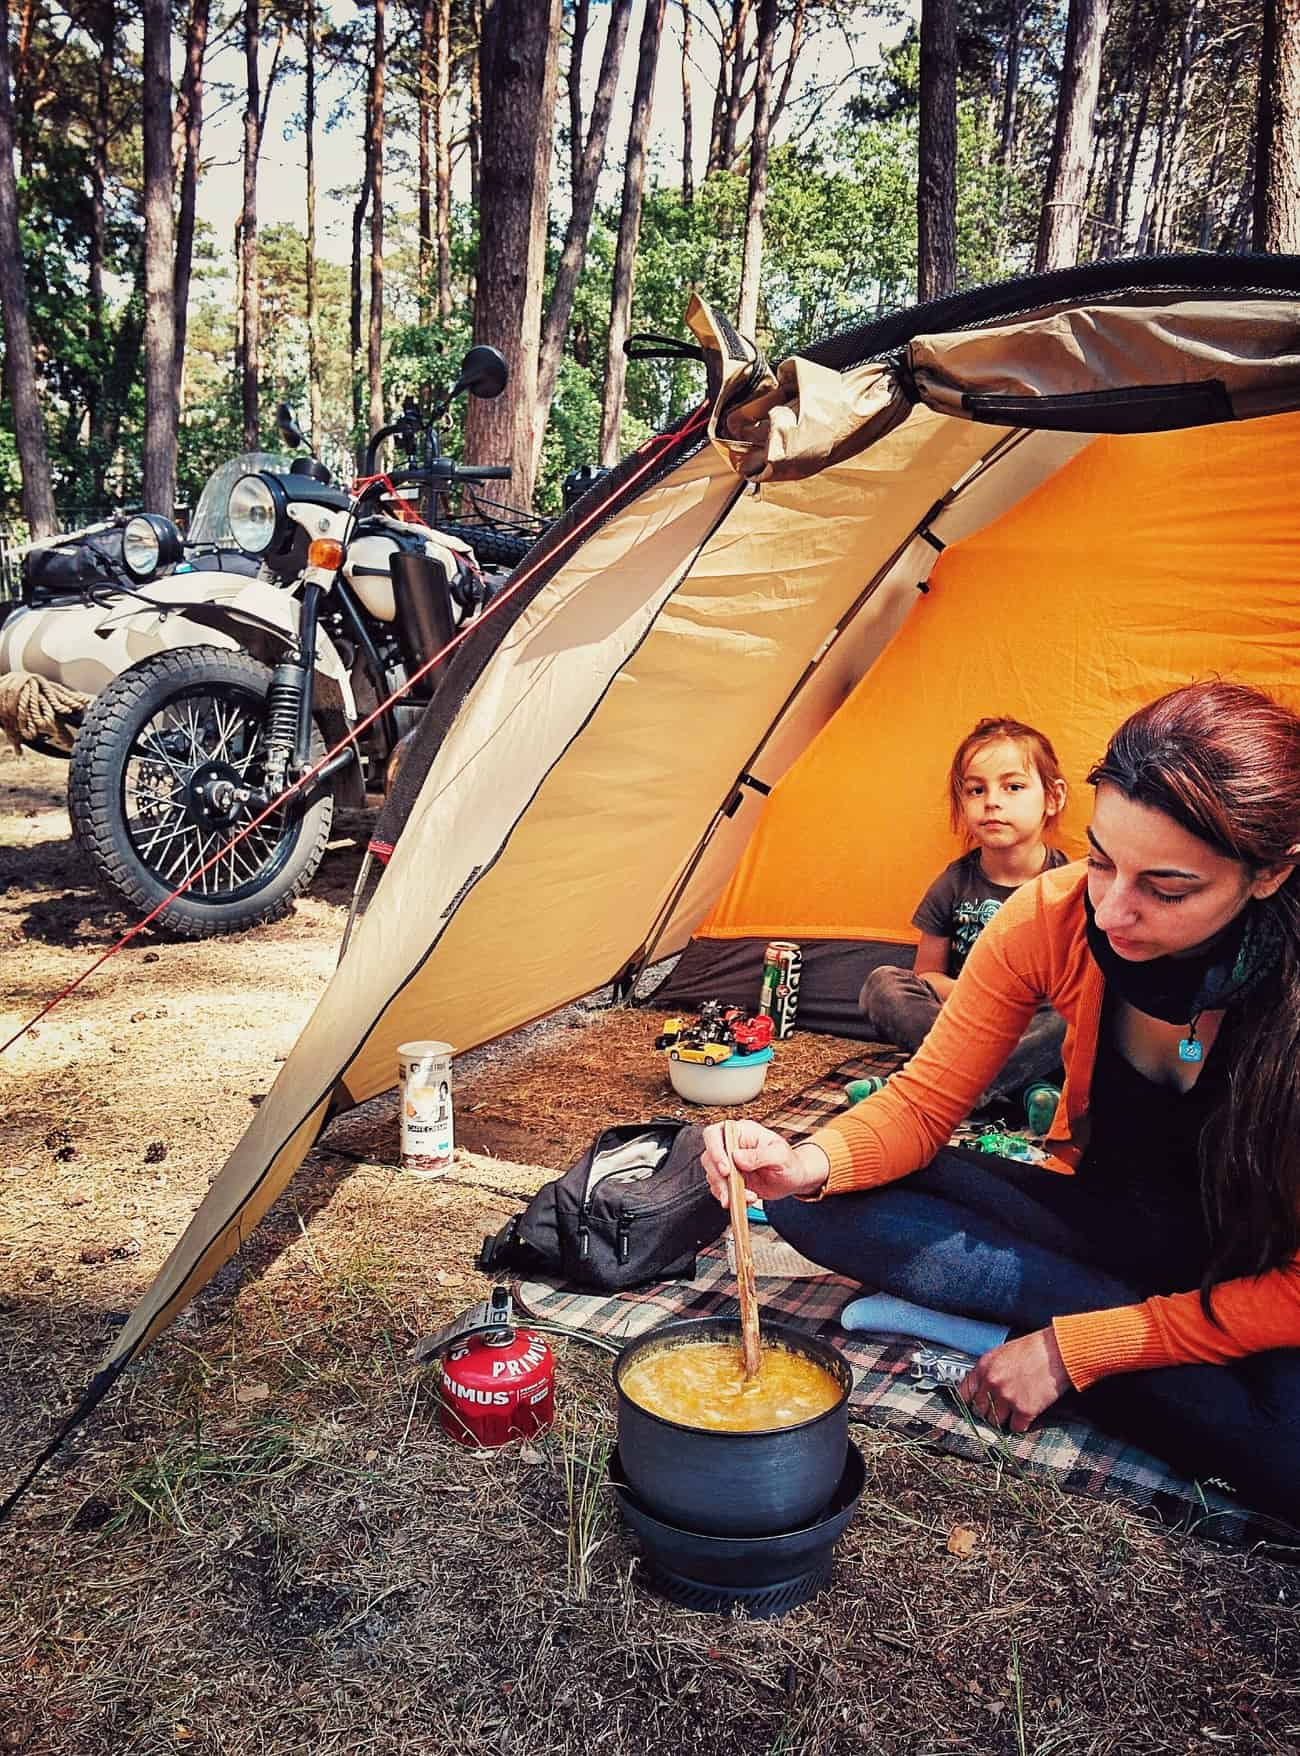 Camping and cooking in Poland.